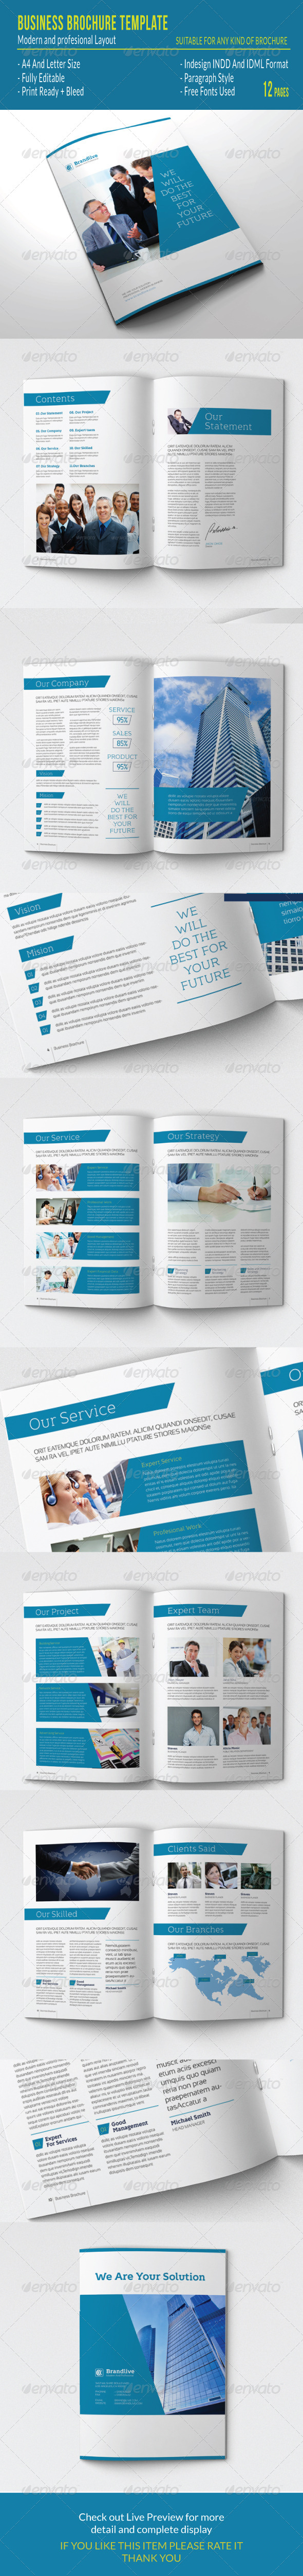 GraphicRiver Business Brochure Template 7611315